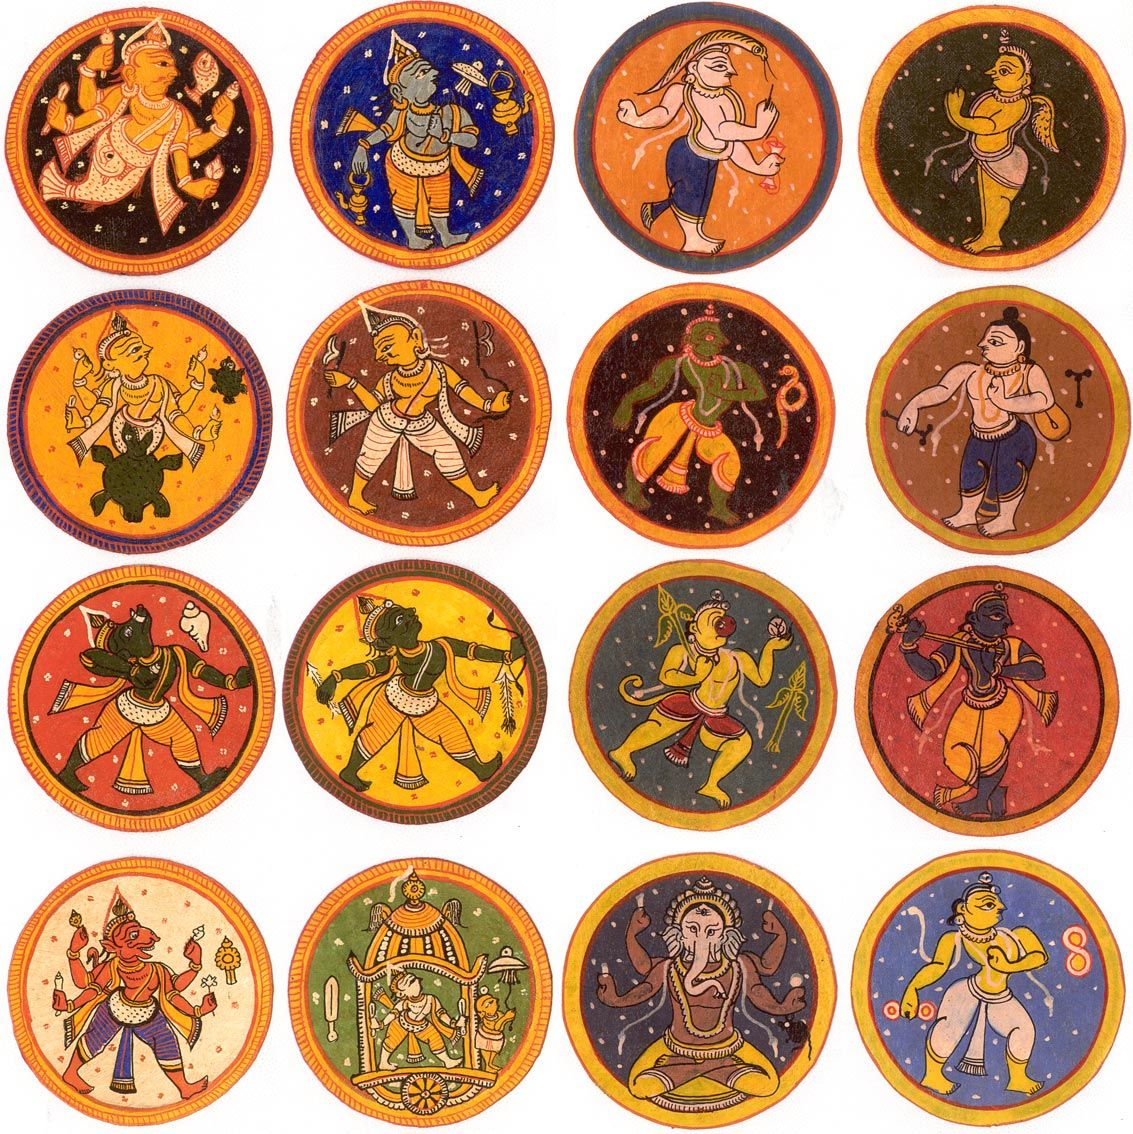 'Ganjifa' is the name given to an ancient Indian card game